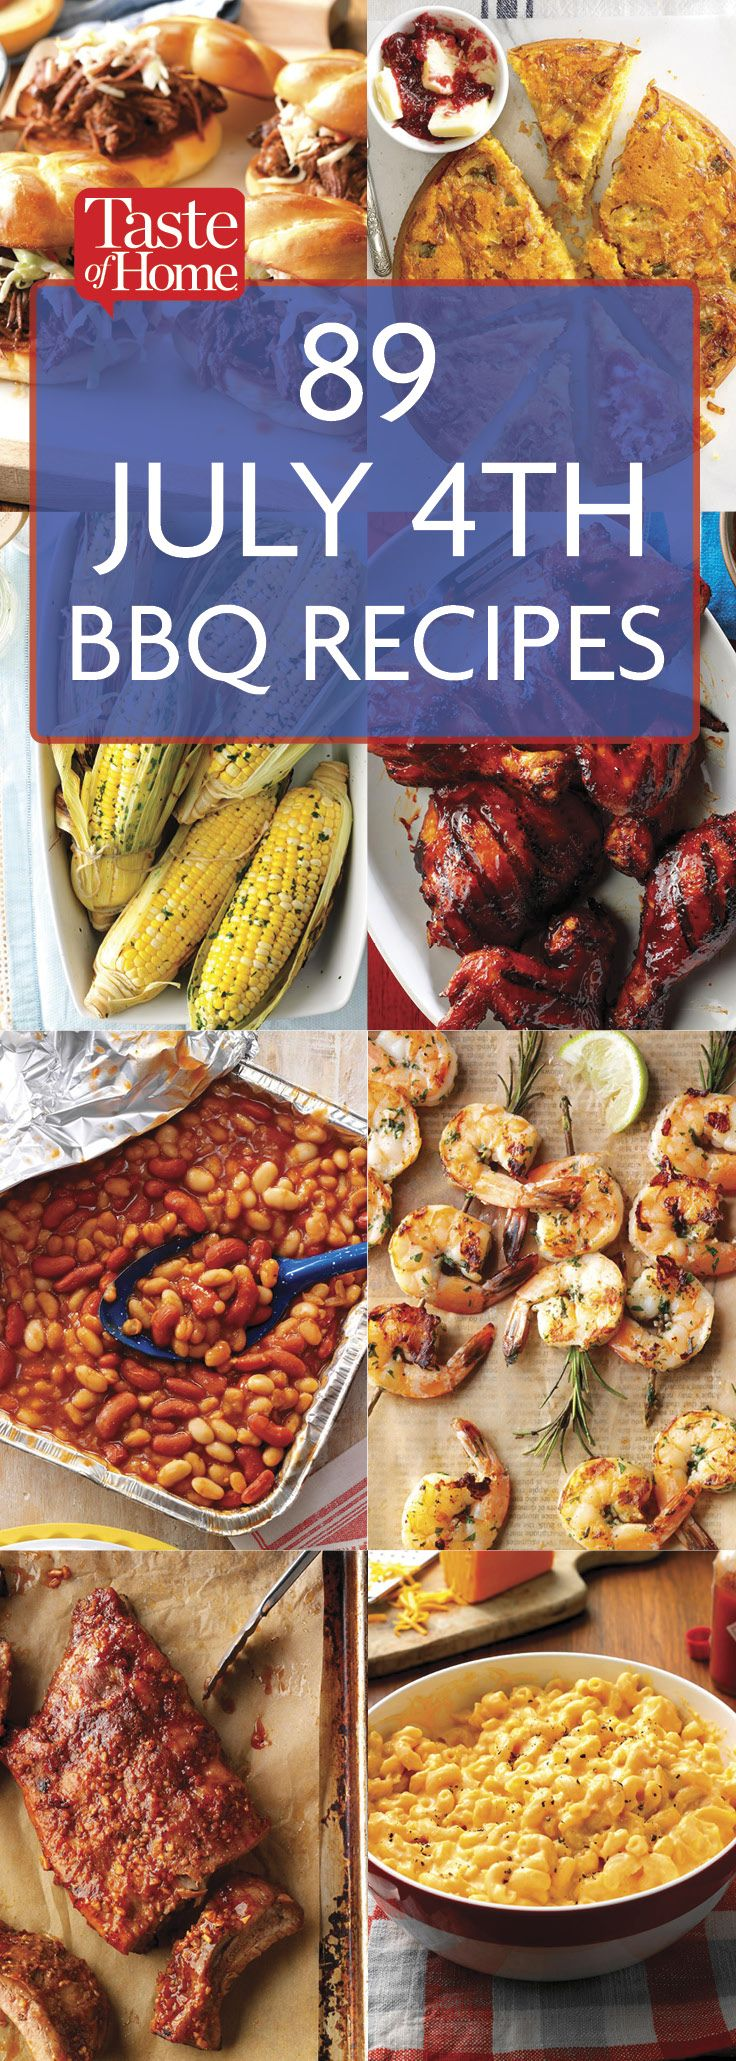 89 July 4th BBQ Recipes